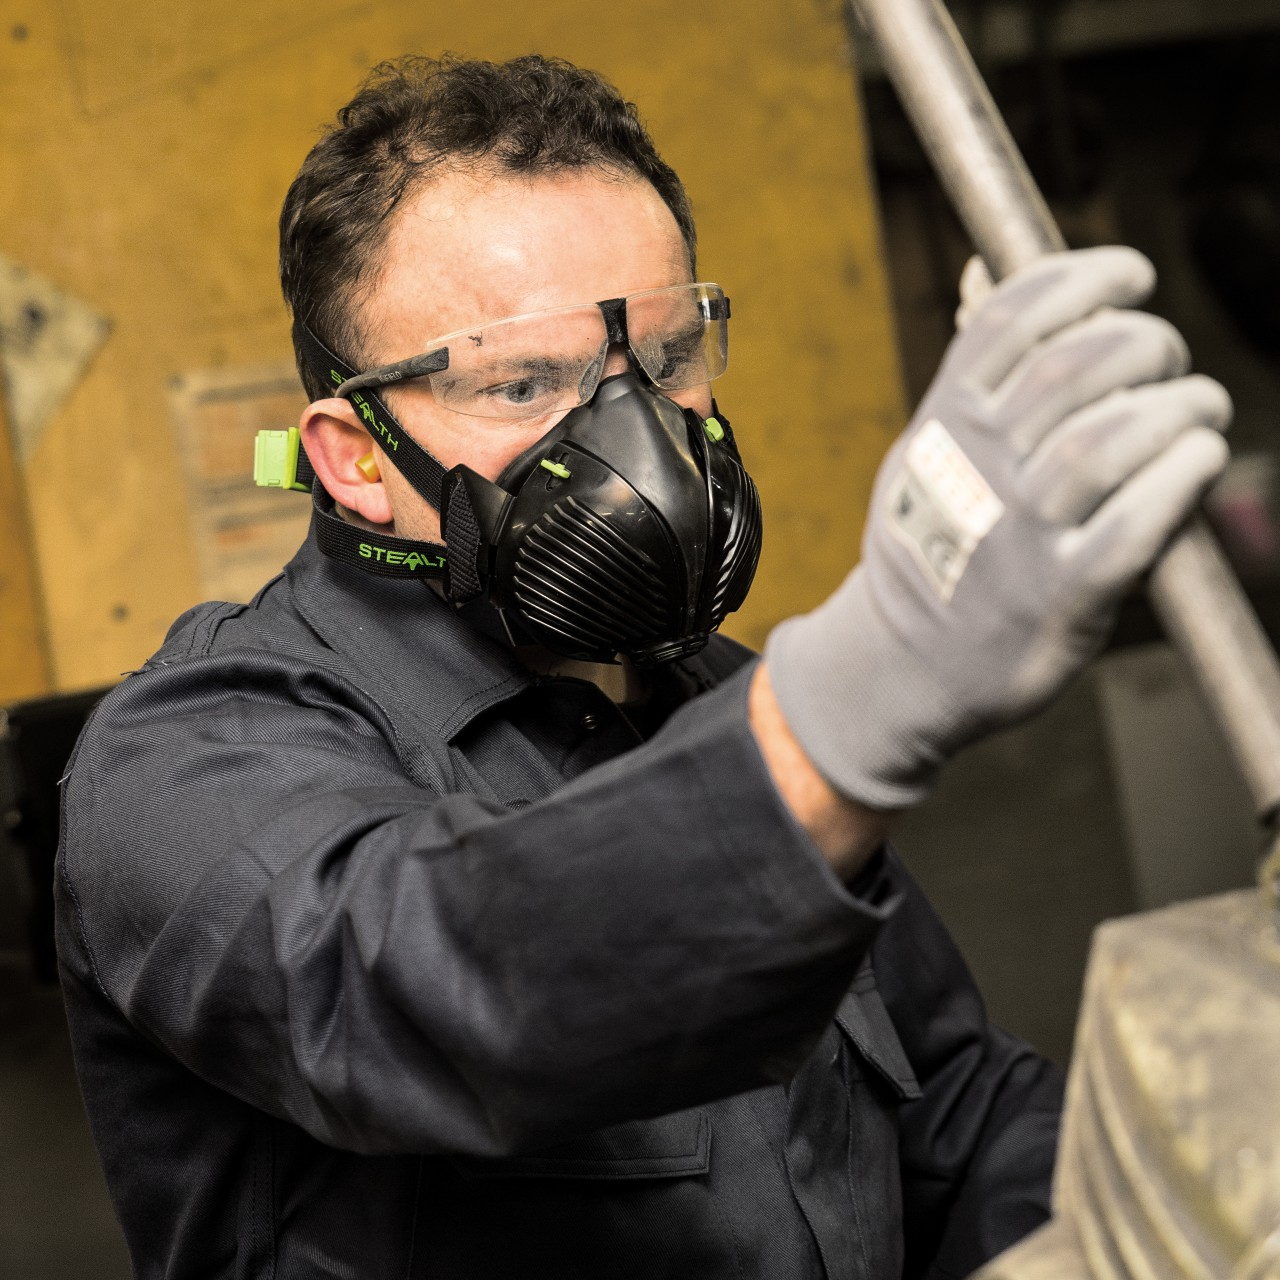 Leading face mask manufacturer Stealth Mask launches a new ecommerce website and distribution centre in US to meet growing demand.